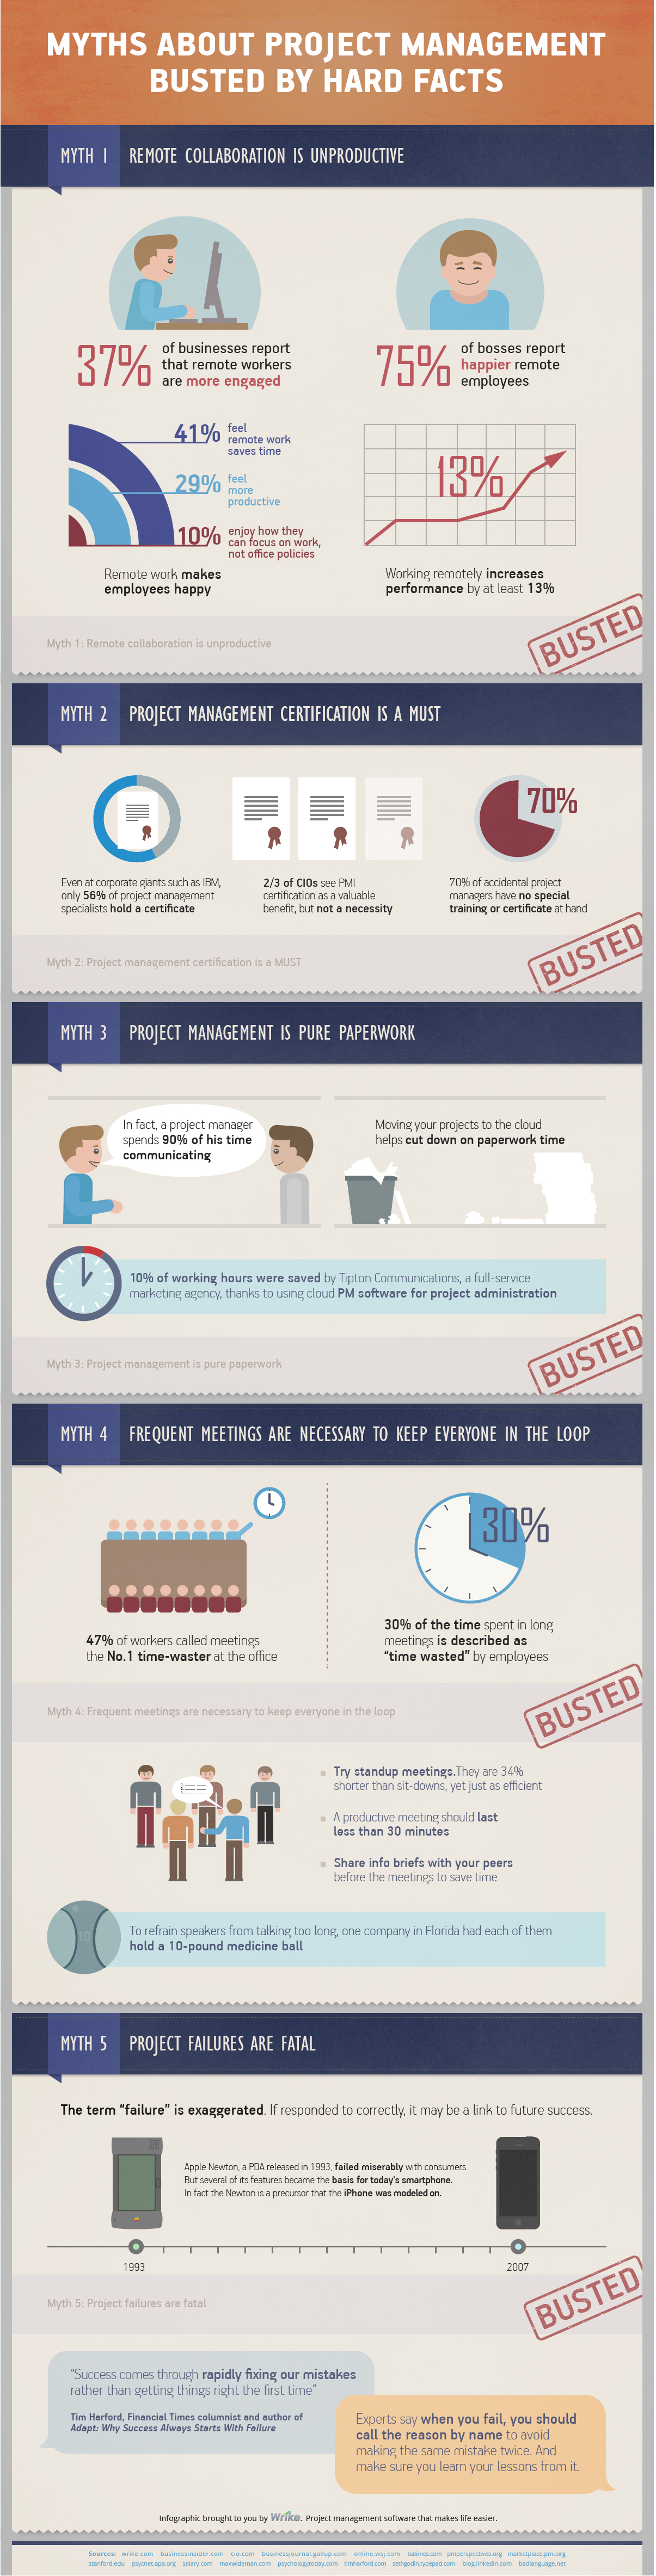 Myths About Project Management Busted By Hard Facts (Infographic) - Image 1